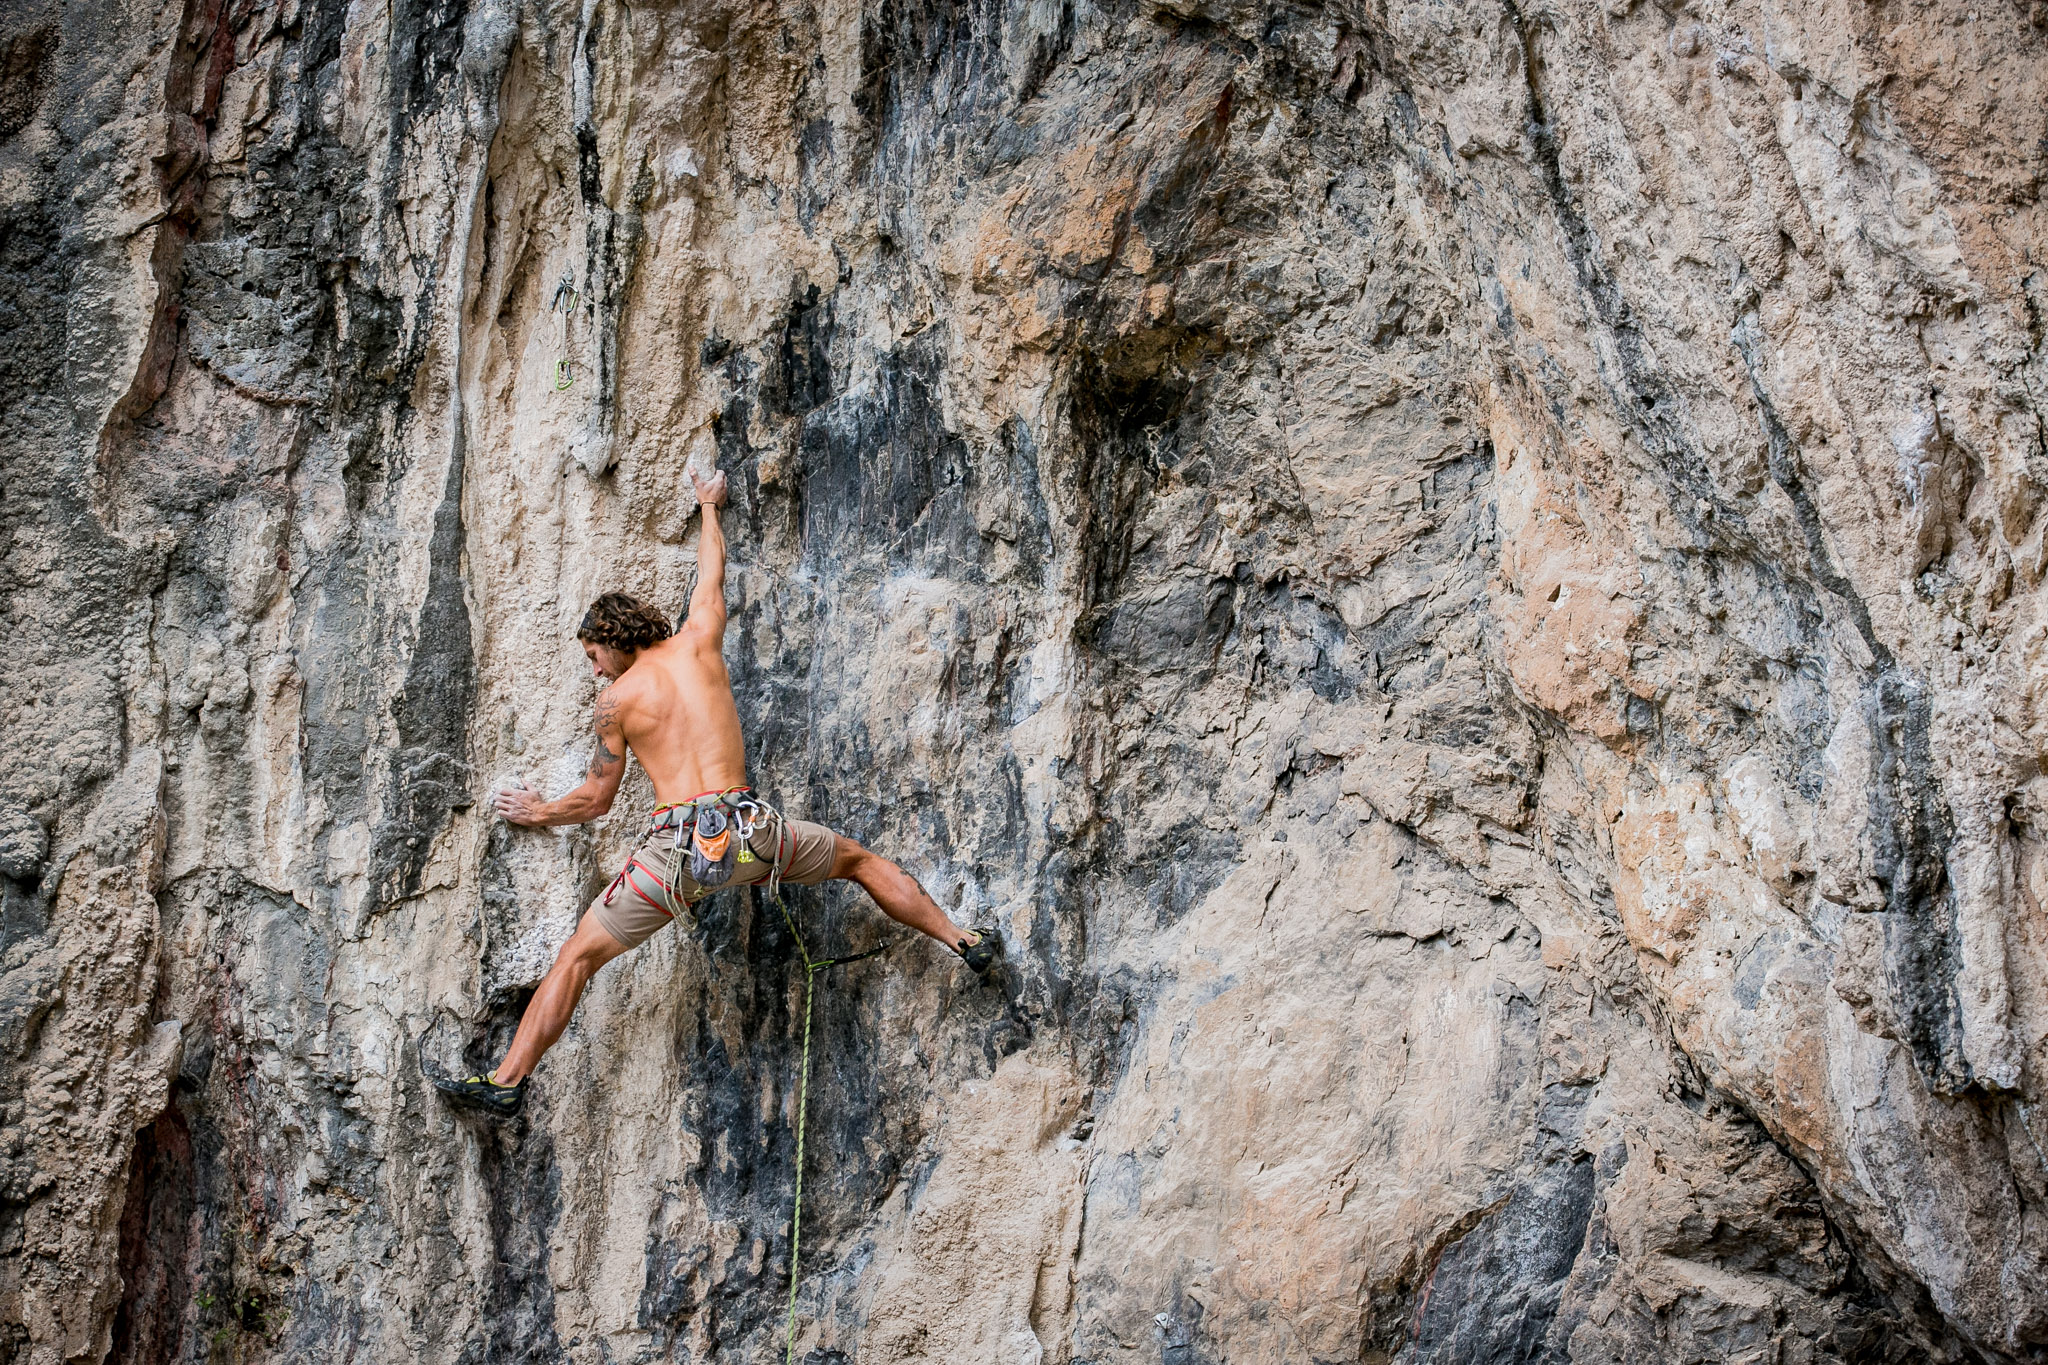 Wade tackling the classic line Bluefin, 5.12a, at The Surf Bowl.